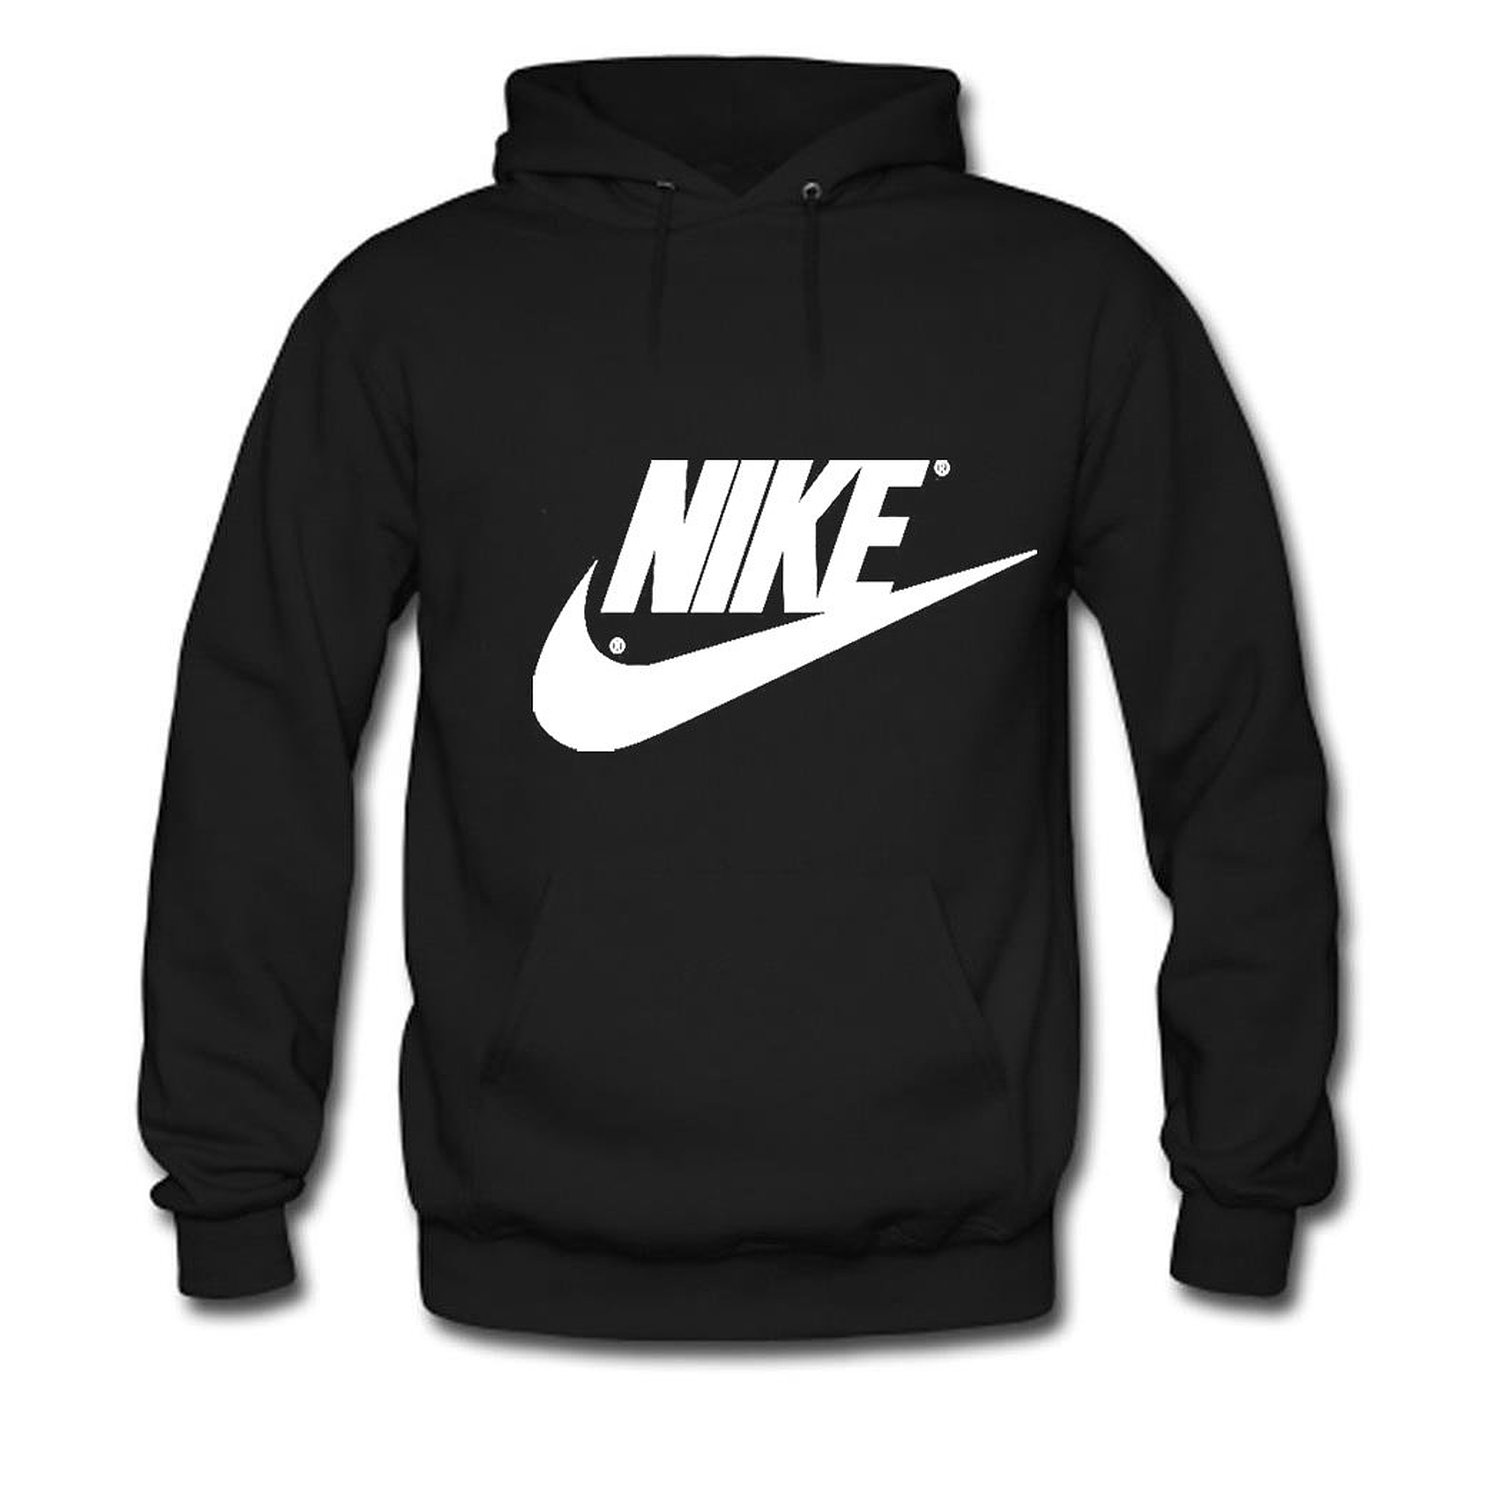 d44835d11aca Amazon.com  NIKE LOGO For womens Printed Sweatshirt Pullover ...